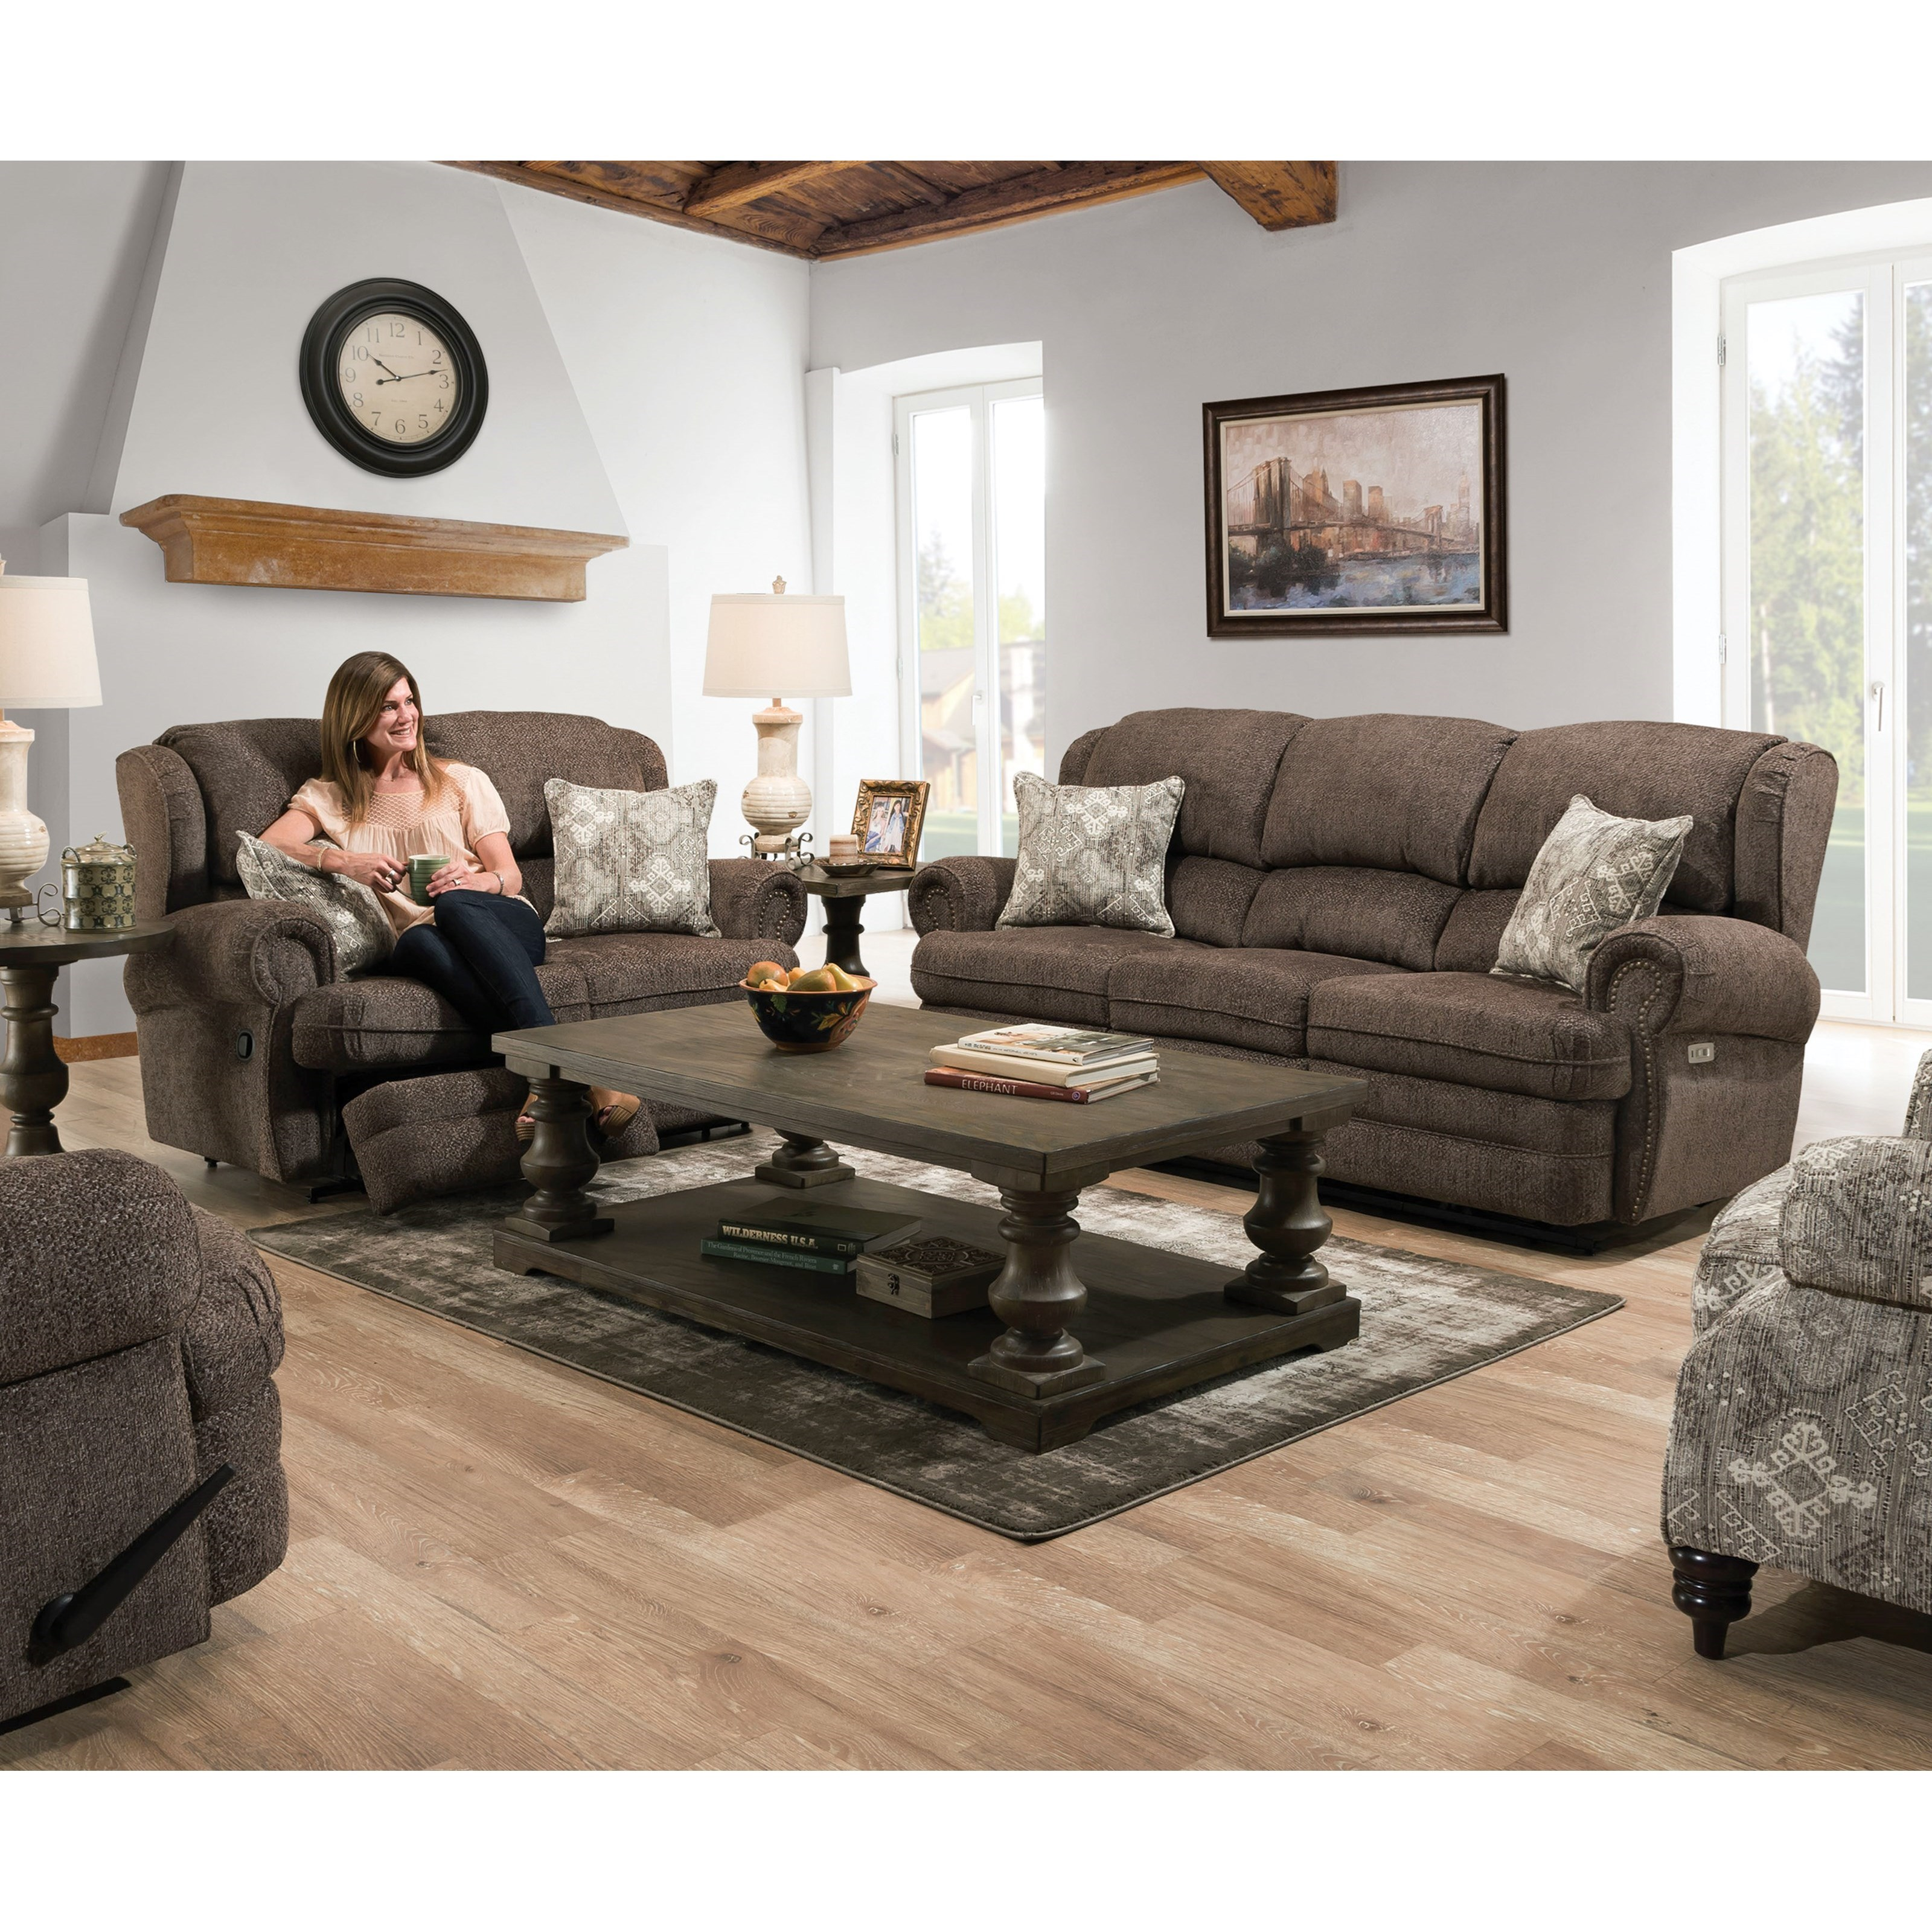 57000 Reclining Living Room Group by United Furniture Industries at Bullard Furniture